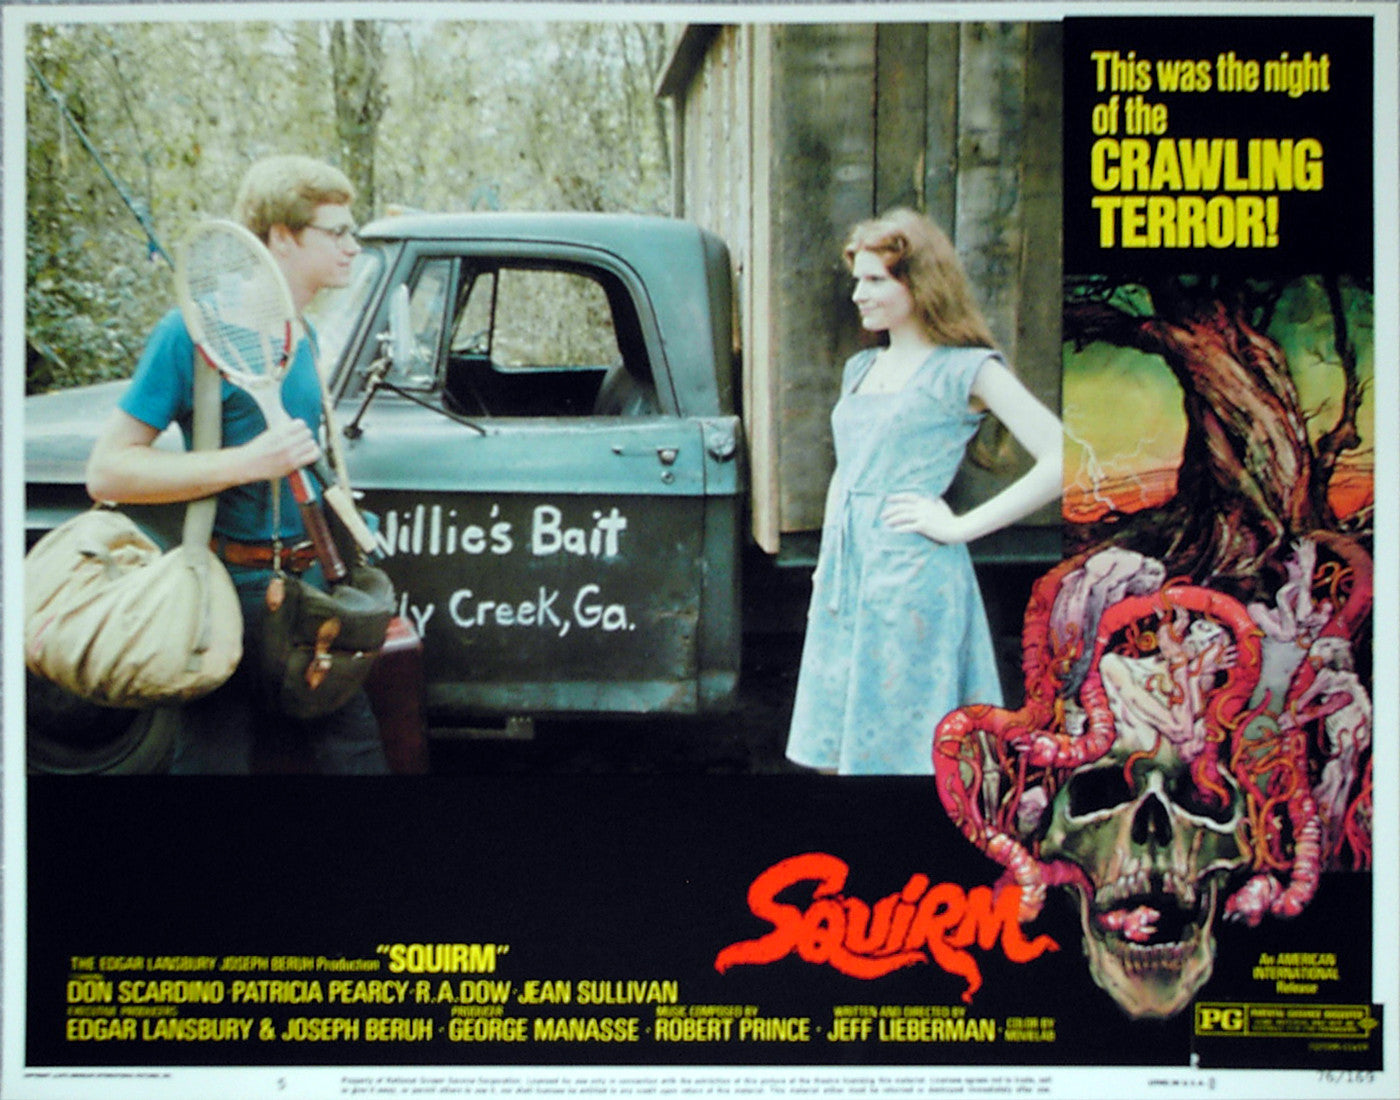 SQUIRM - US lobby card v5